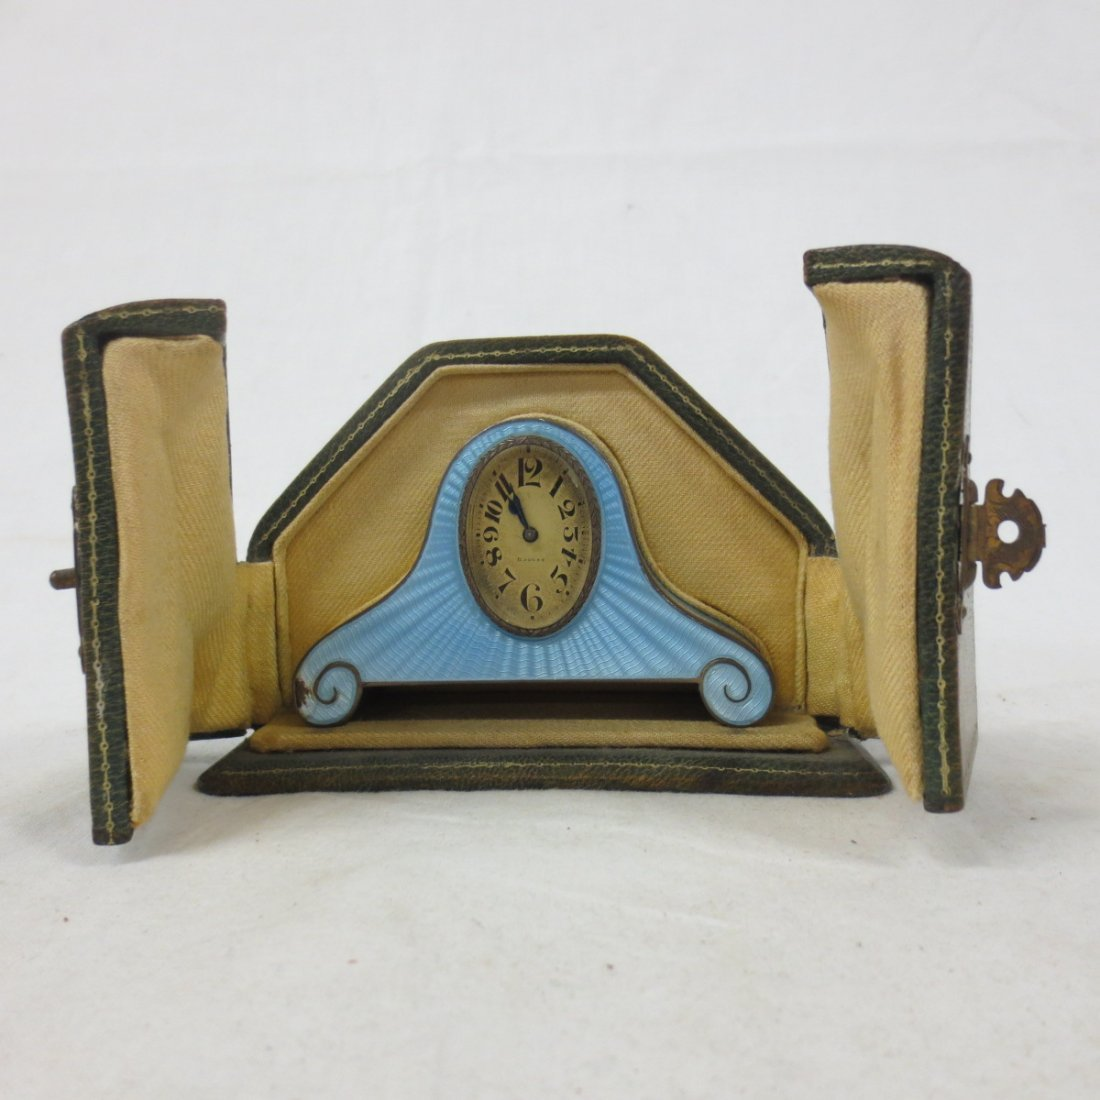 French blue Enamel and Silver Mantel Clock, marked